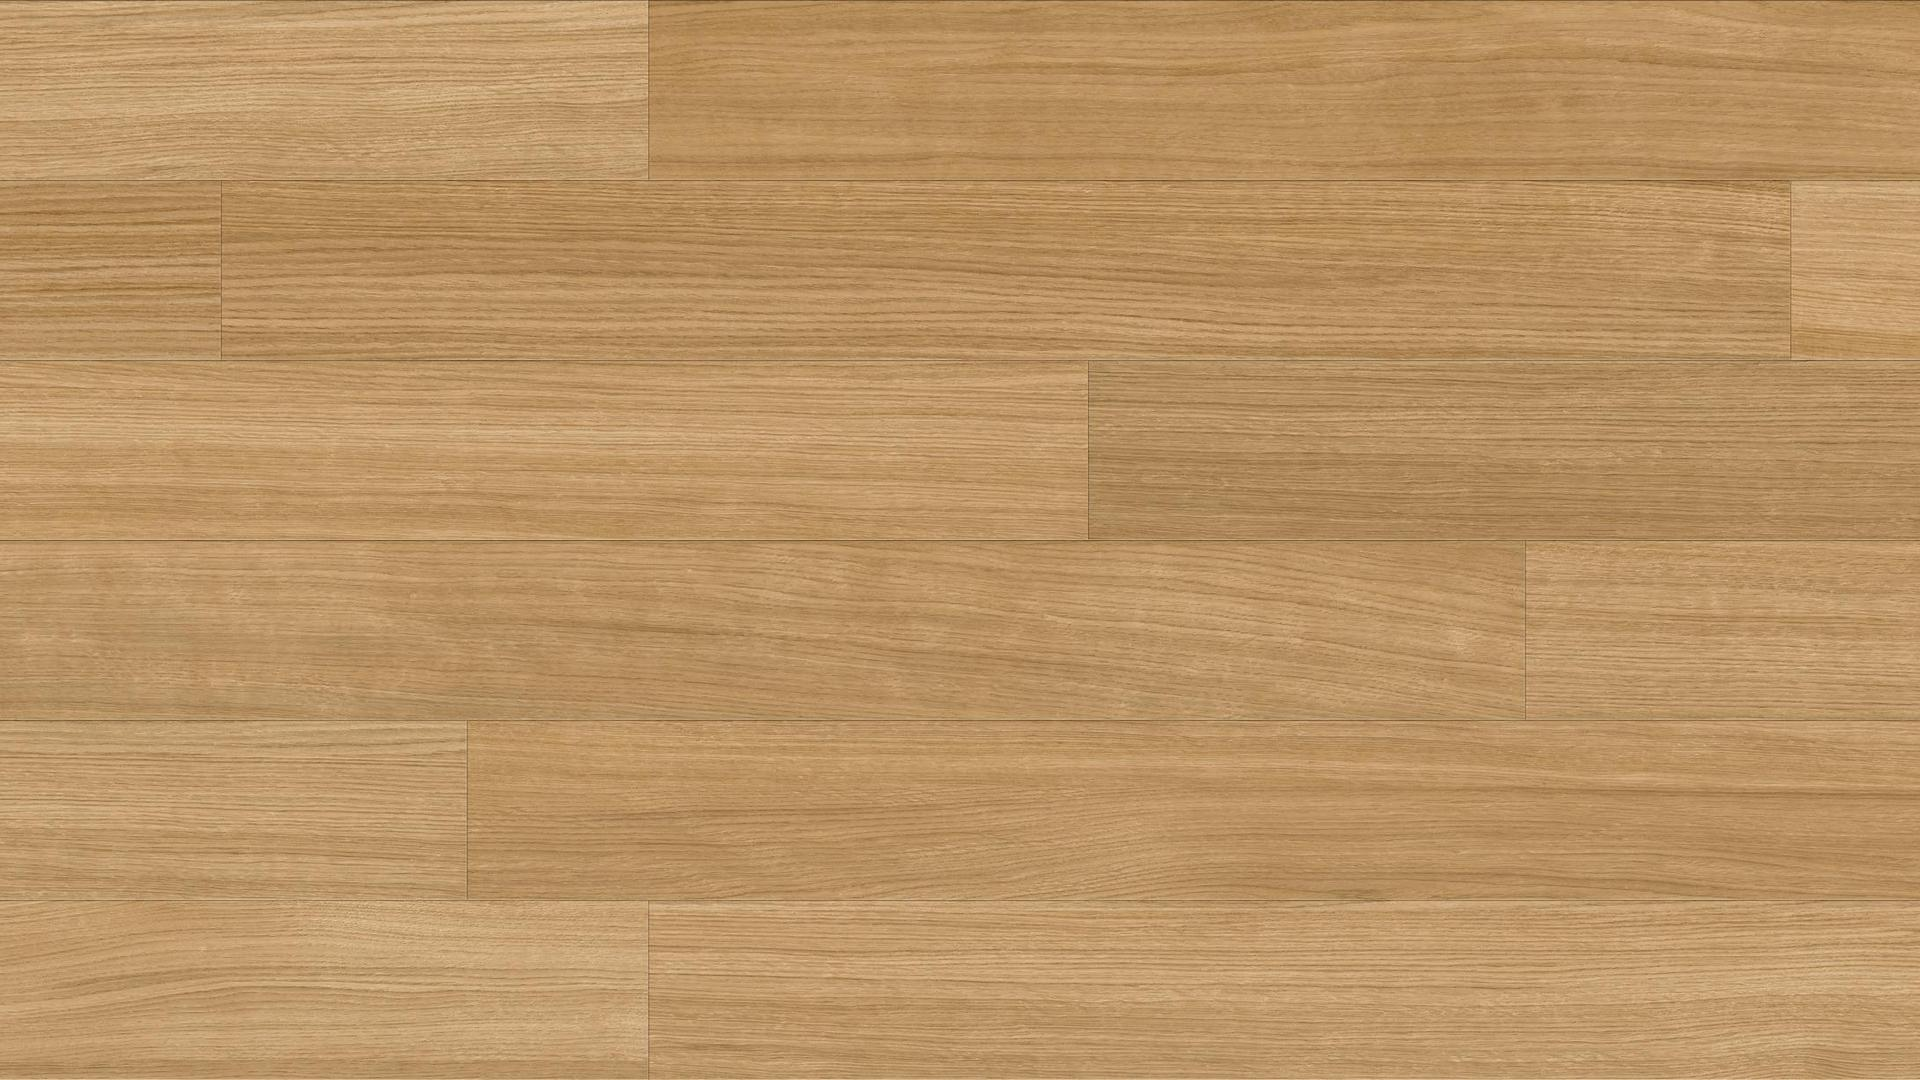 Layed area wood floor Veneer Parquet EI0AB0 Oak Urban LM